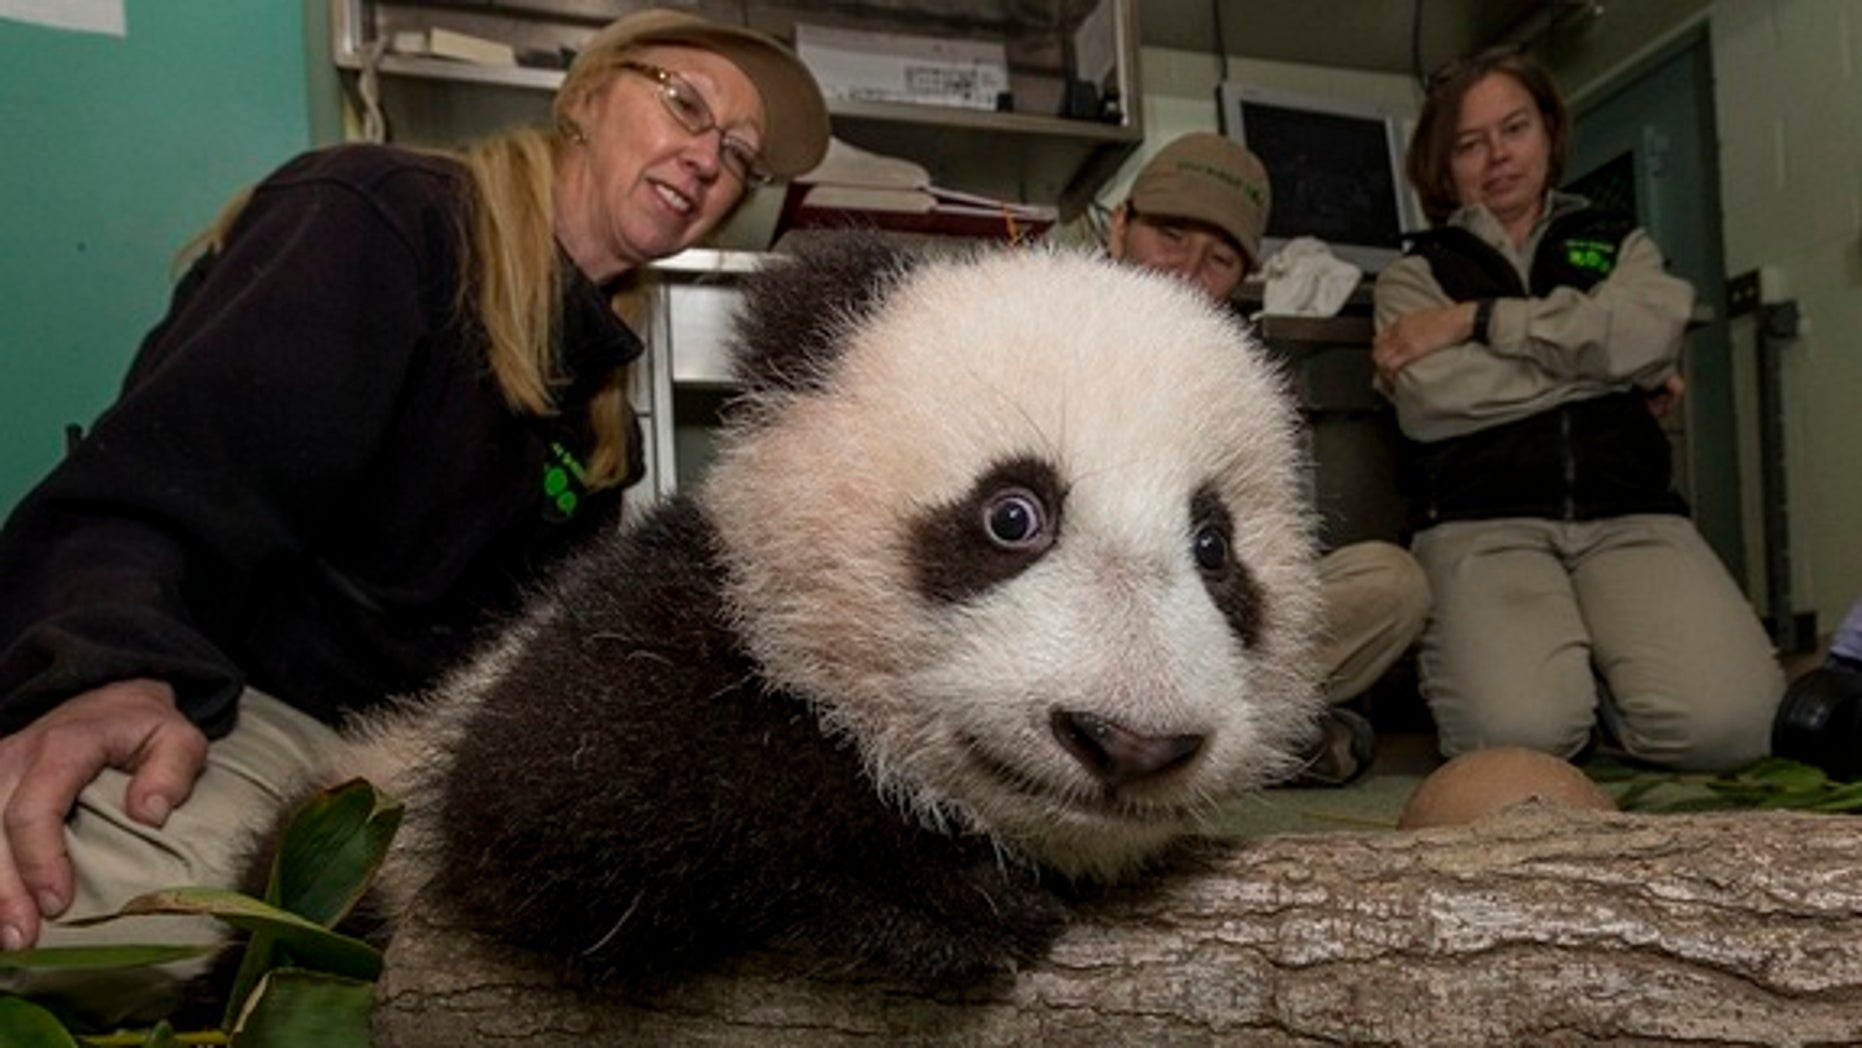 San Diego Zoo keepers placed a small section of a tree branch and some fresh bamboo on the ground for the panda cub's 17th exam on Dec. 13.